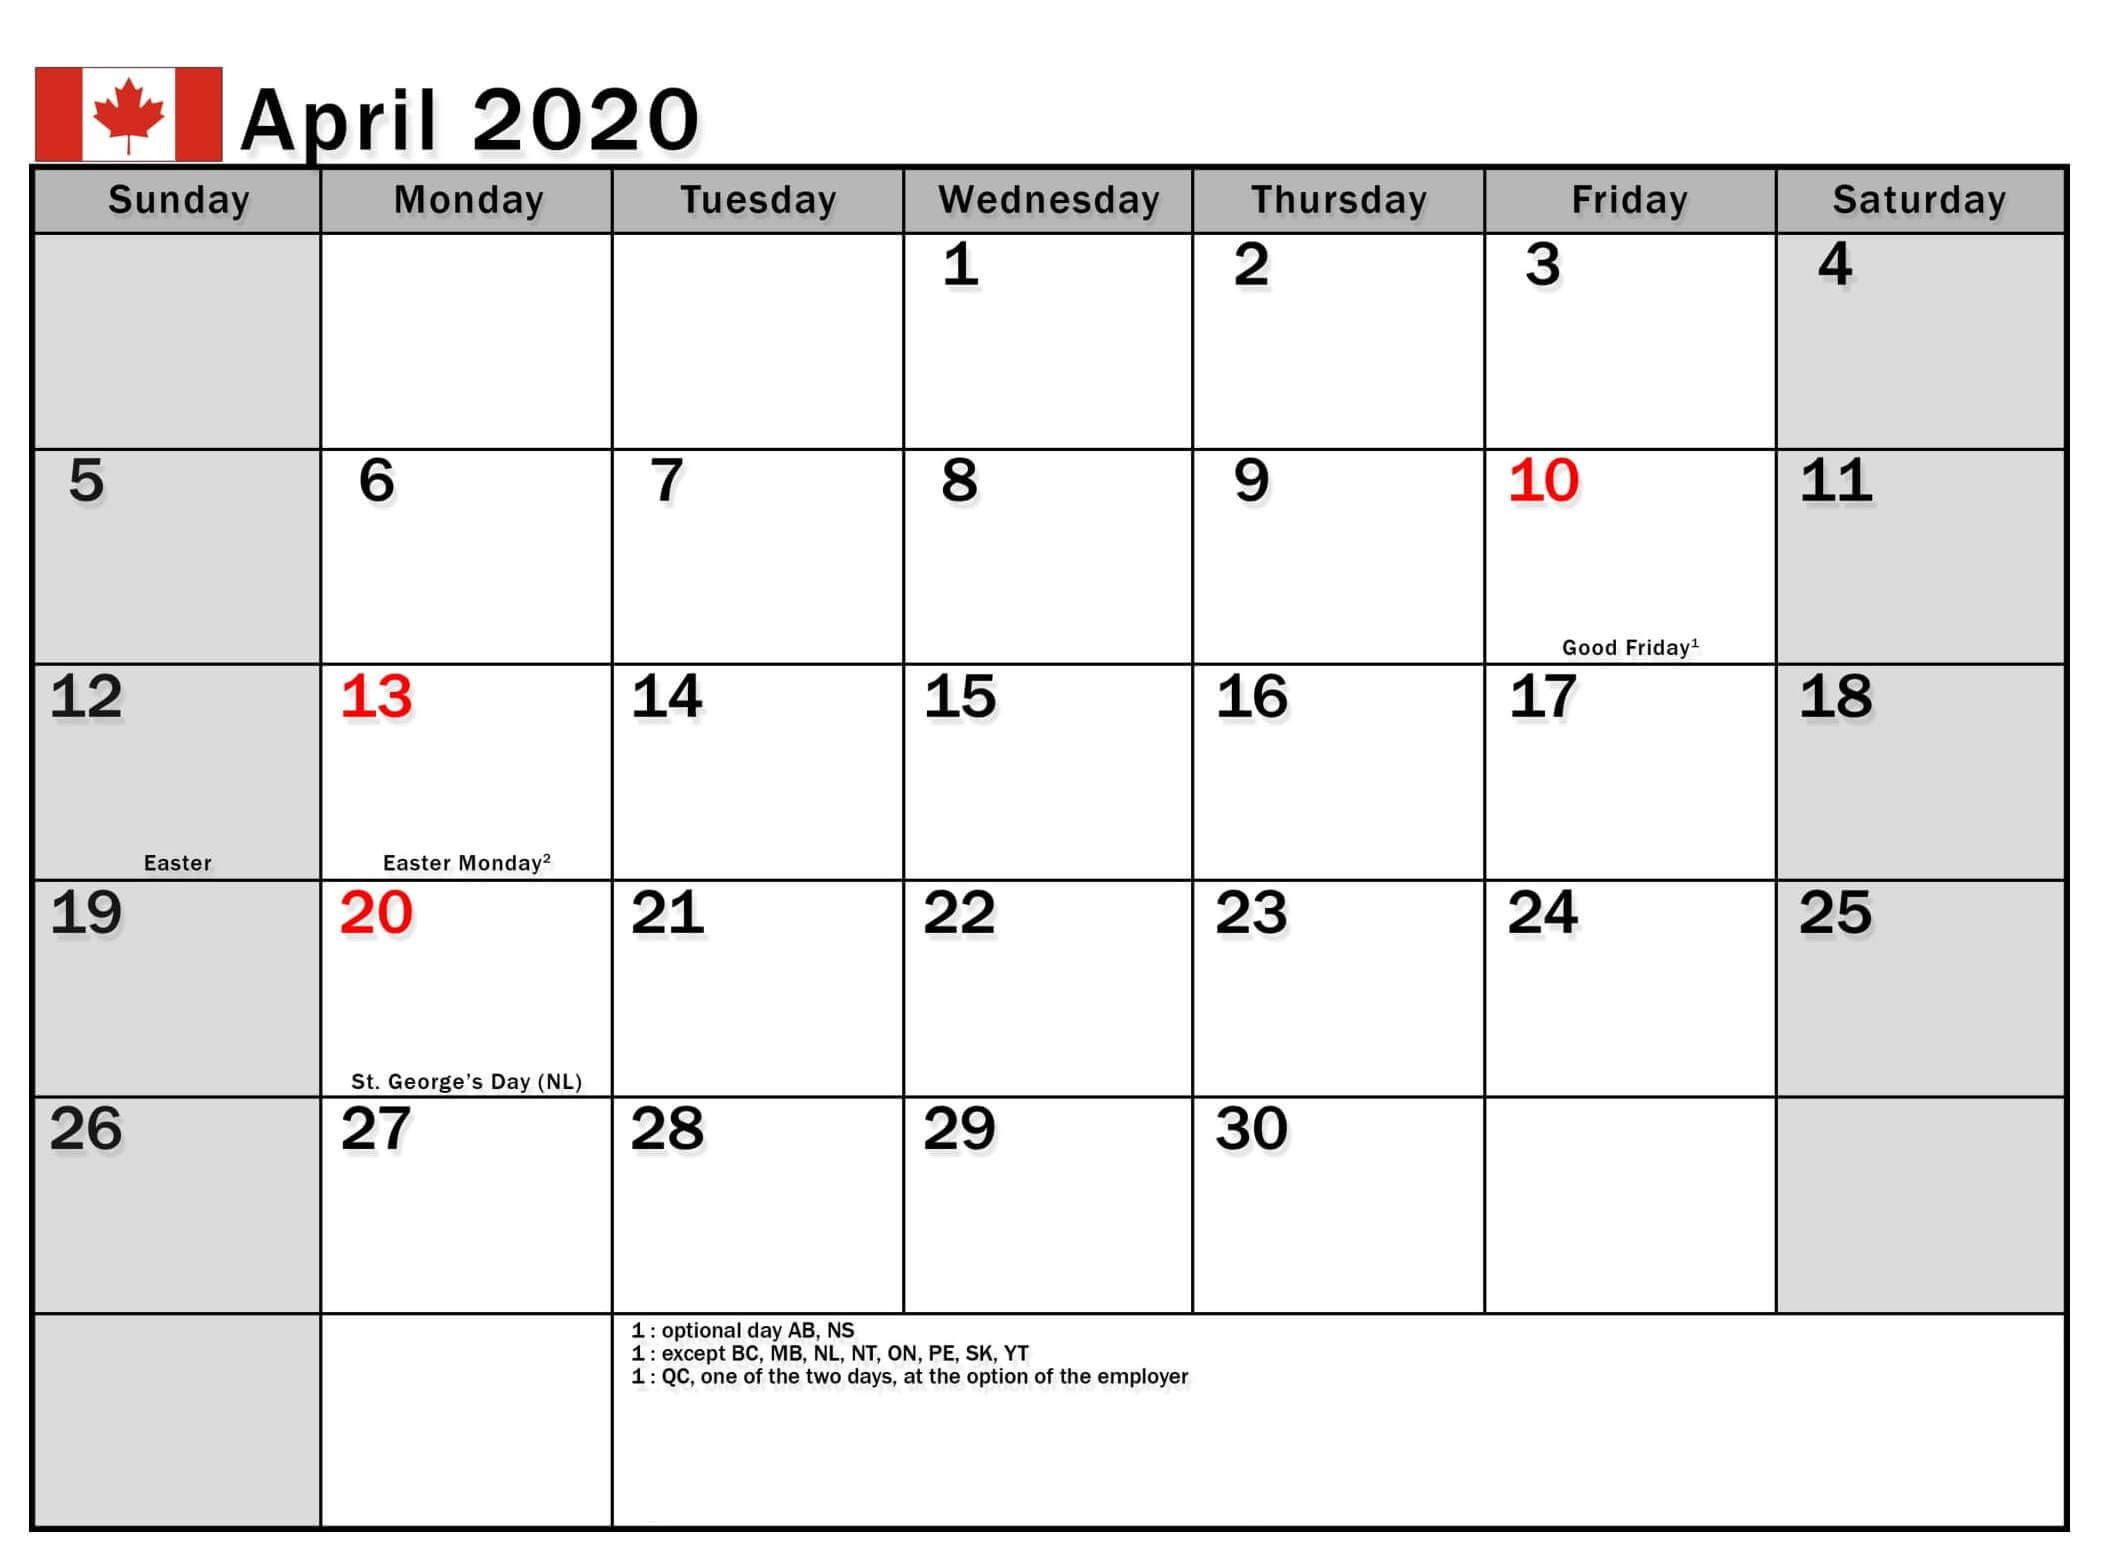 April 2020 Calendar with Holidays USA, UK, Canada, India